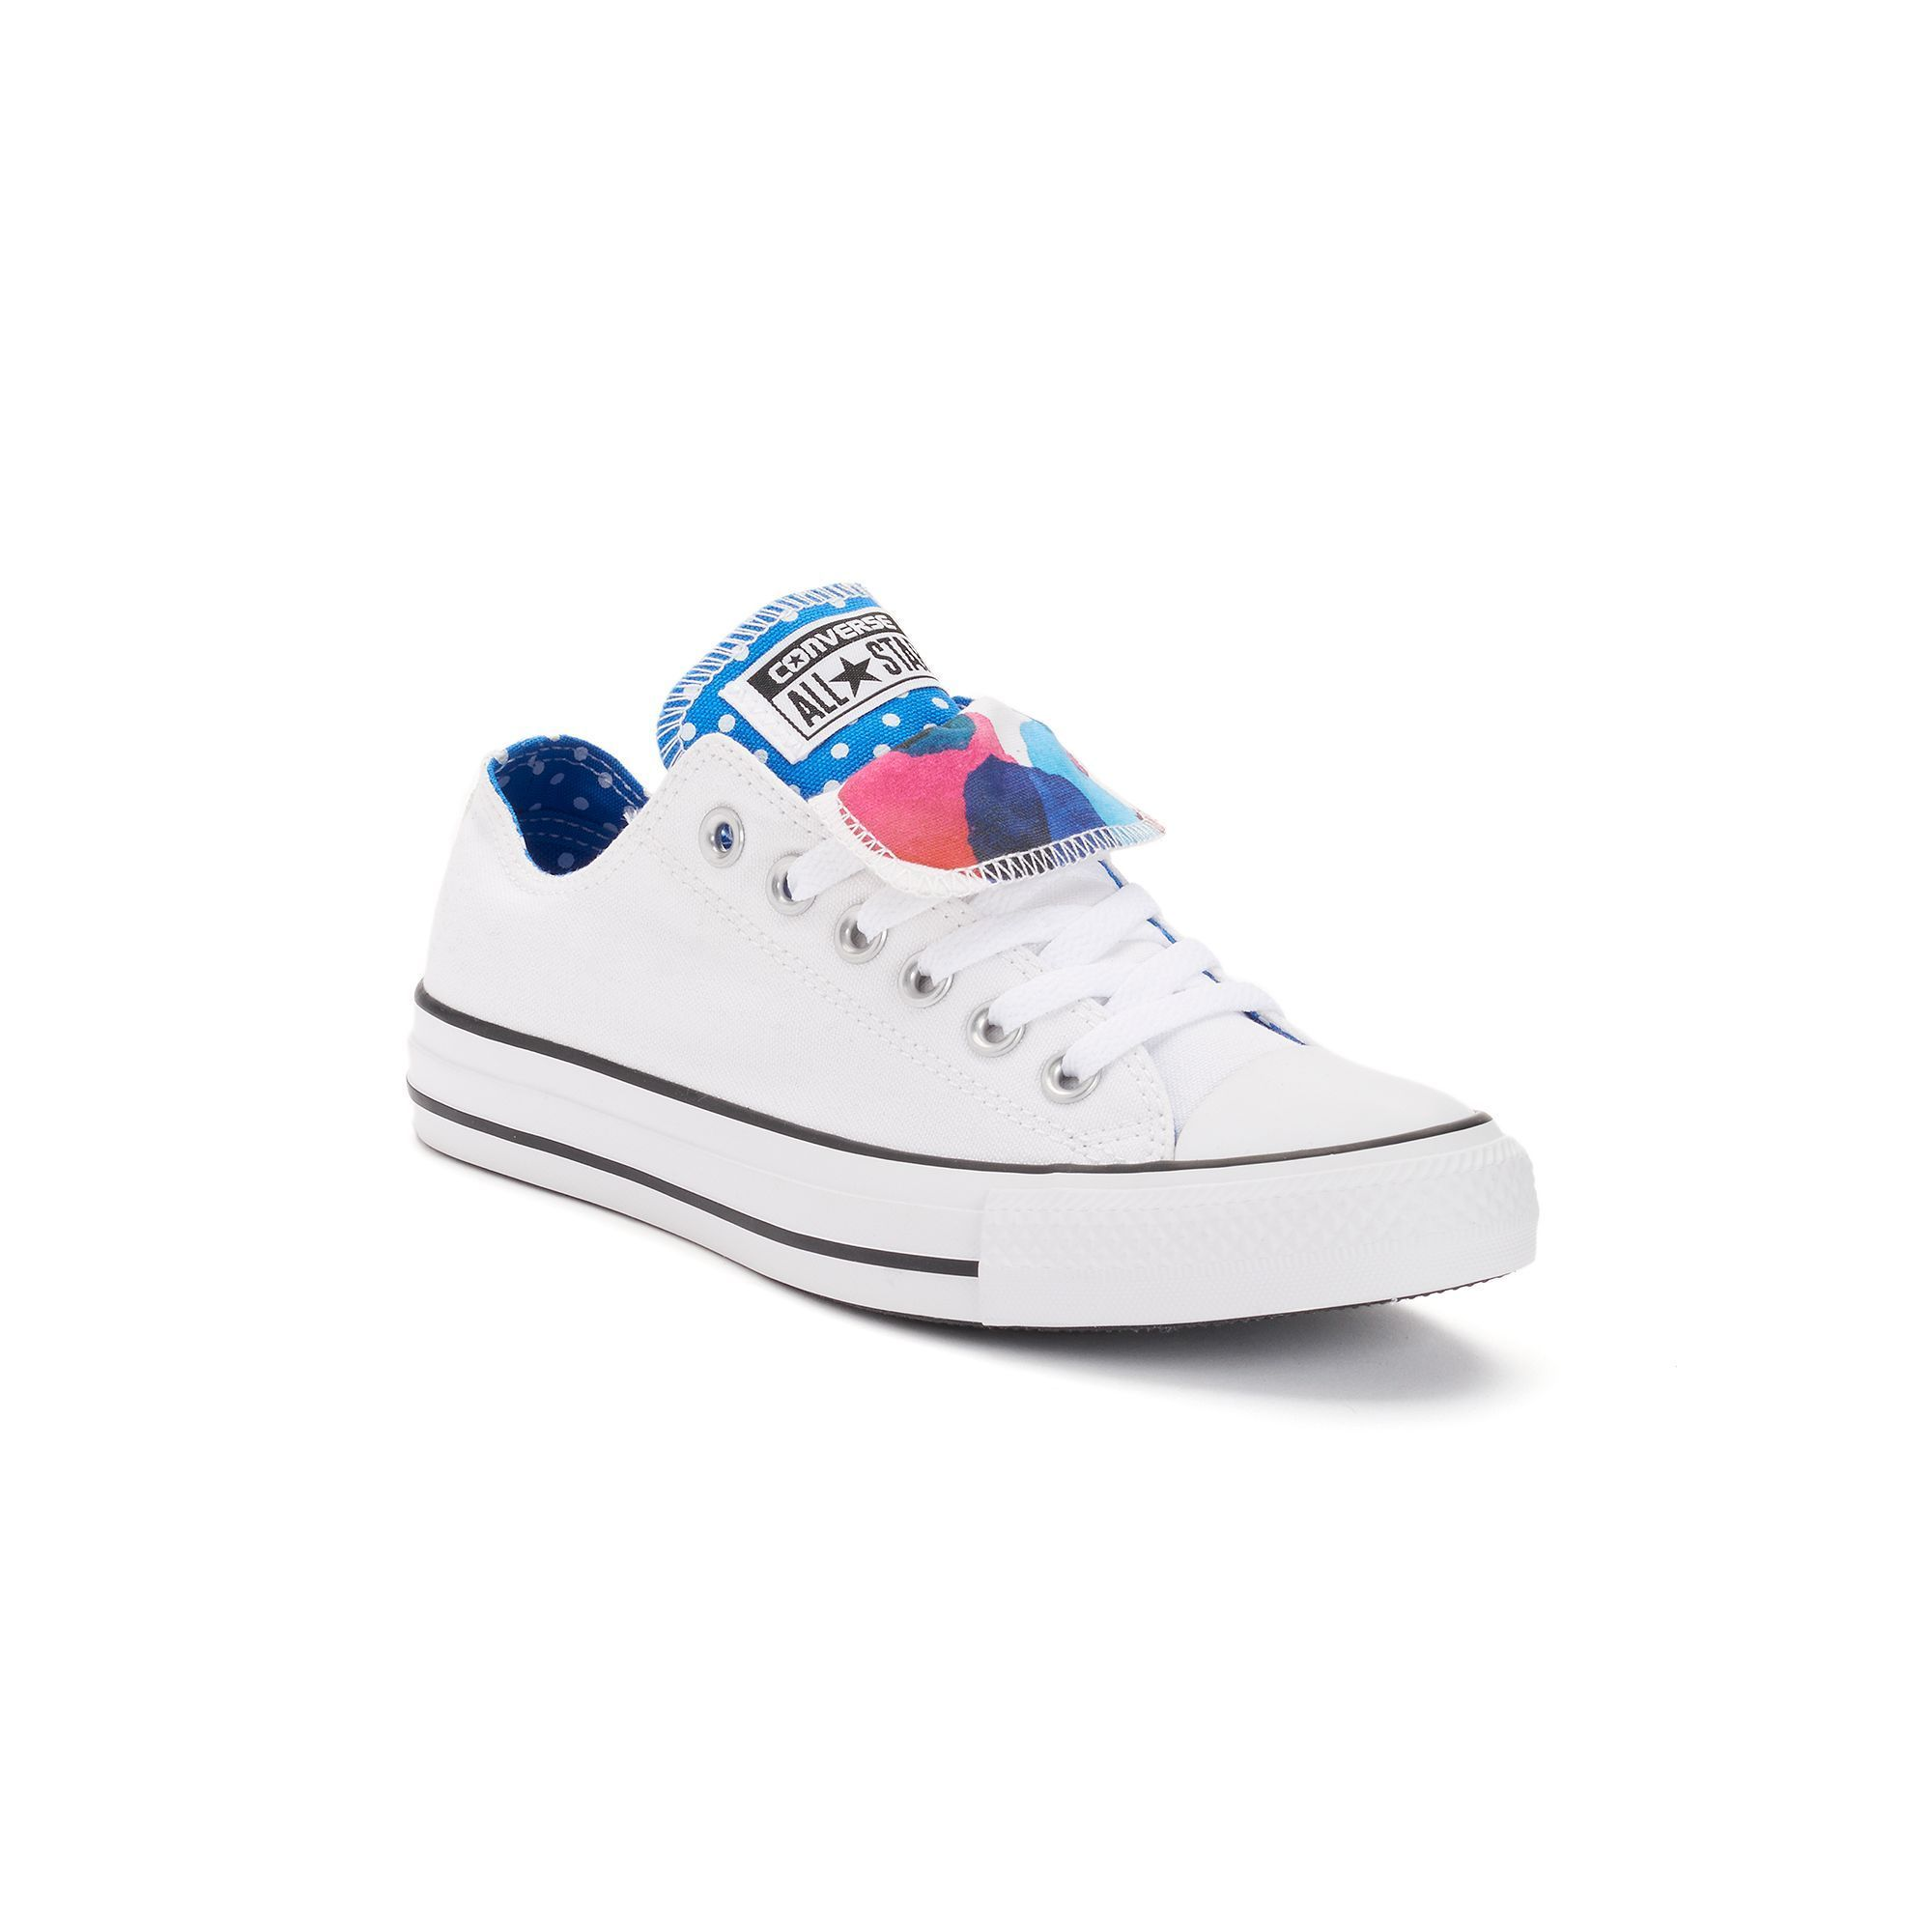 d86e57ec2d6cf0 Women s Converse Chuck Taylor All Star Double-Tongue Watercolor Shoes